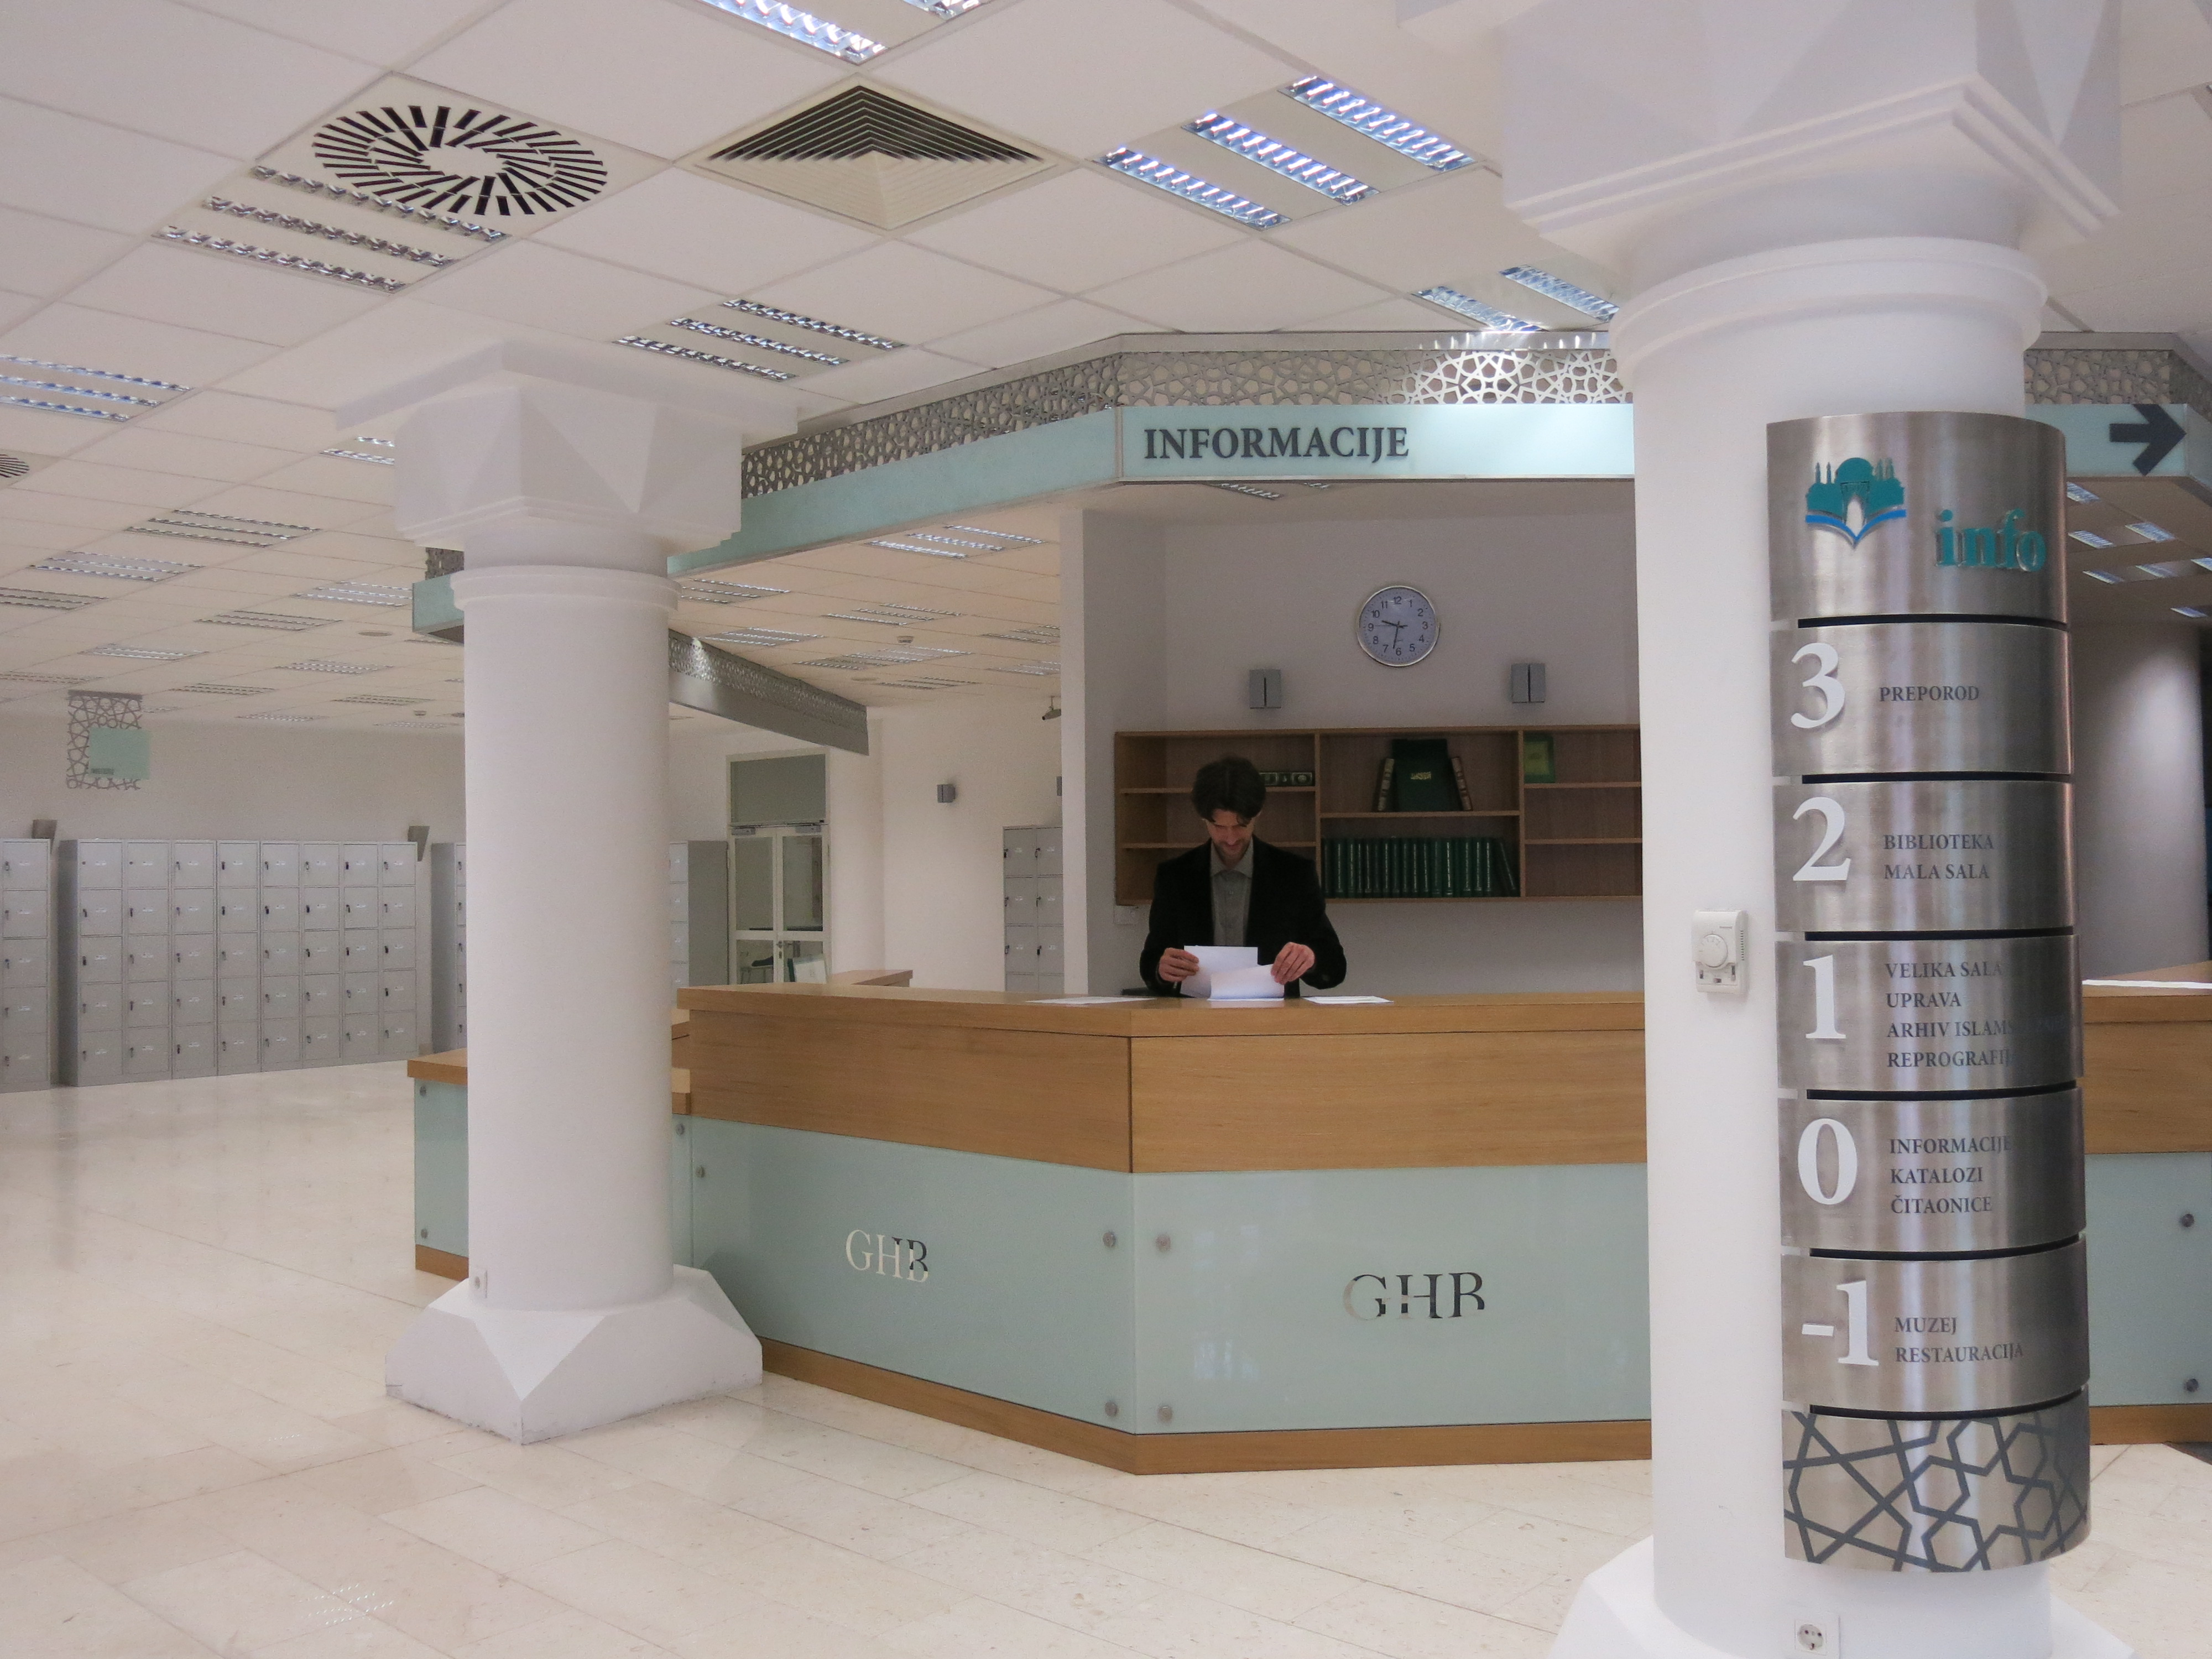 The reception desk at GHB